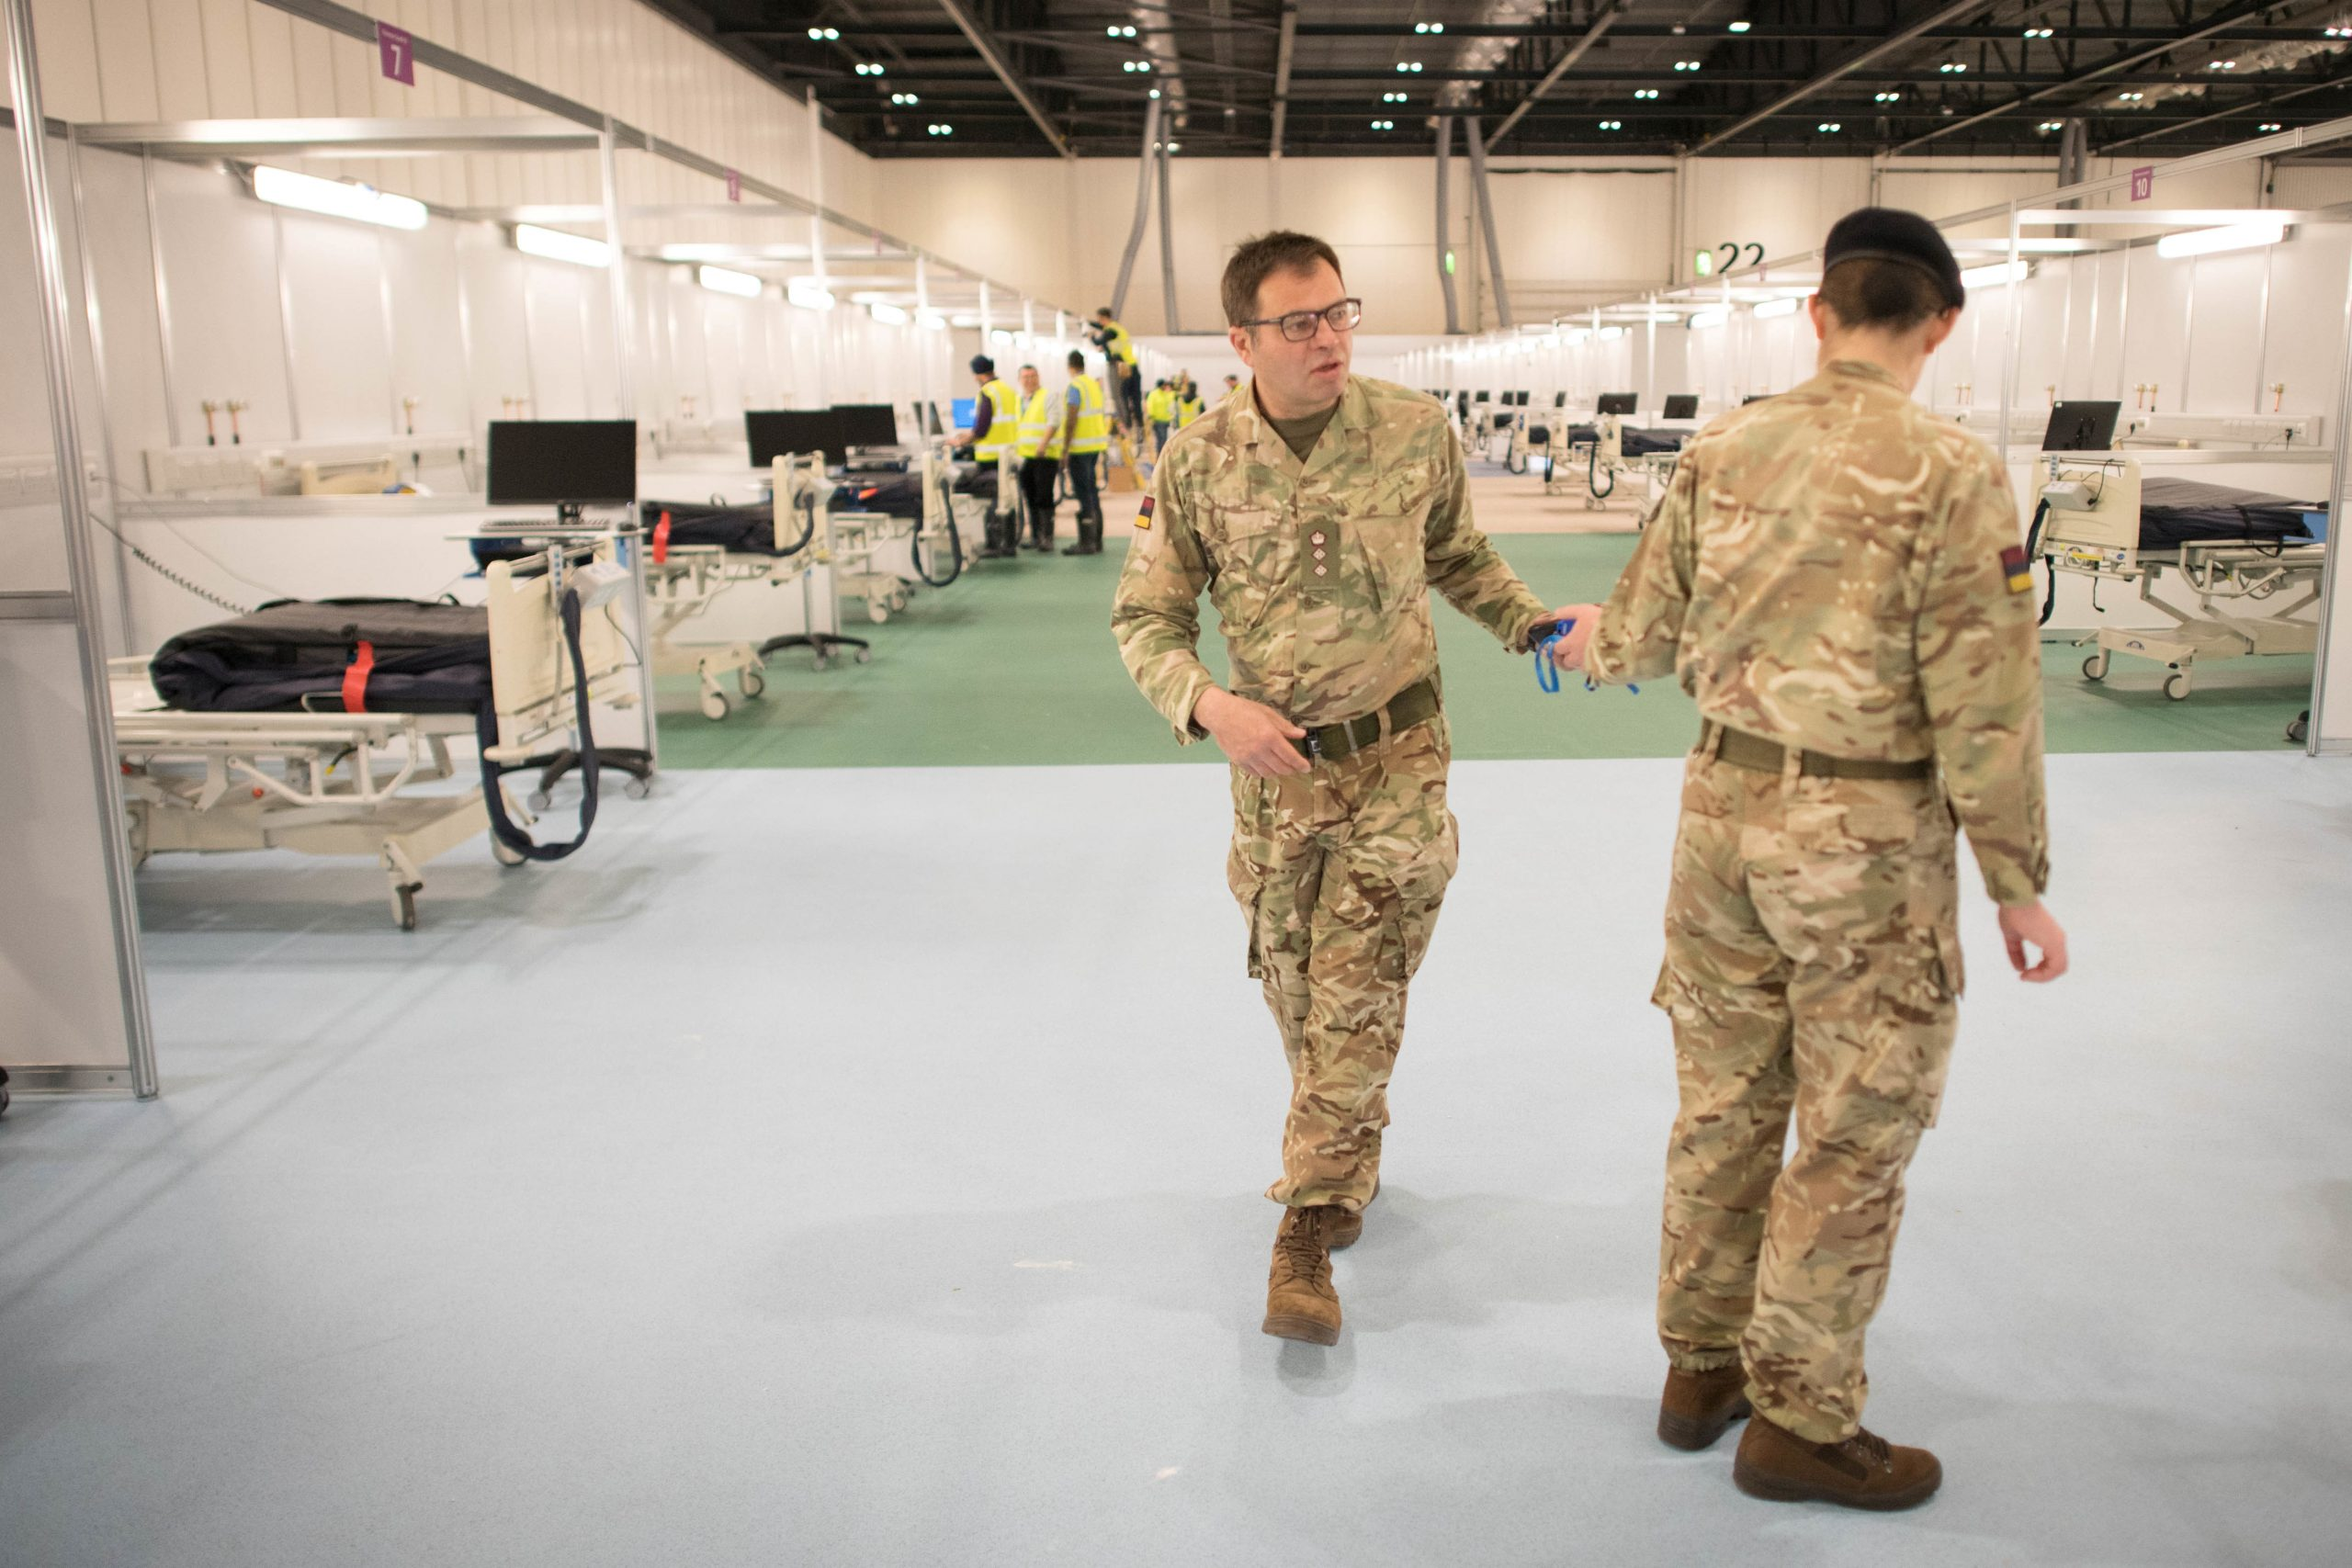 Military personnel is seen at ExCel London, during its conversion into the temporary NHS Nightingale Hospital, comprising of two wards, each of 2,000 people, to help tackle the coronavirus disease (Covid-19) outbreak, in London, Britain on March 31, 2020. As on date, the UK registered over 25,000 Covid-19 cases and 1,829 deaths. (Photo: Stefan Rousseau/Pool via REUTERS)